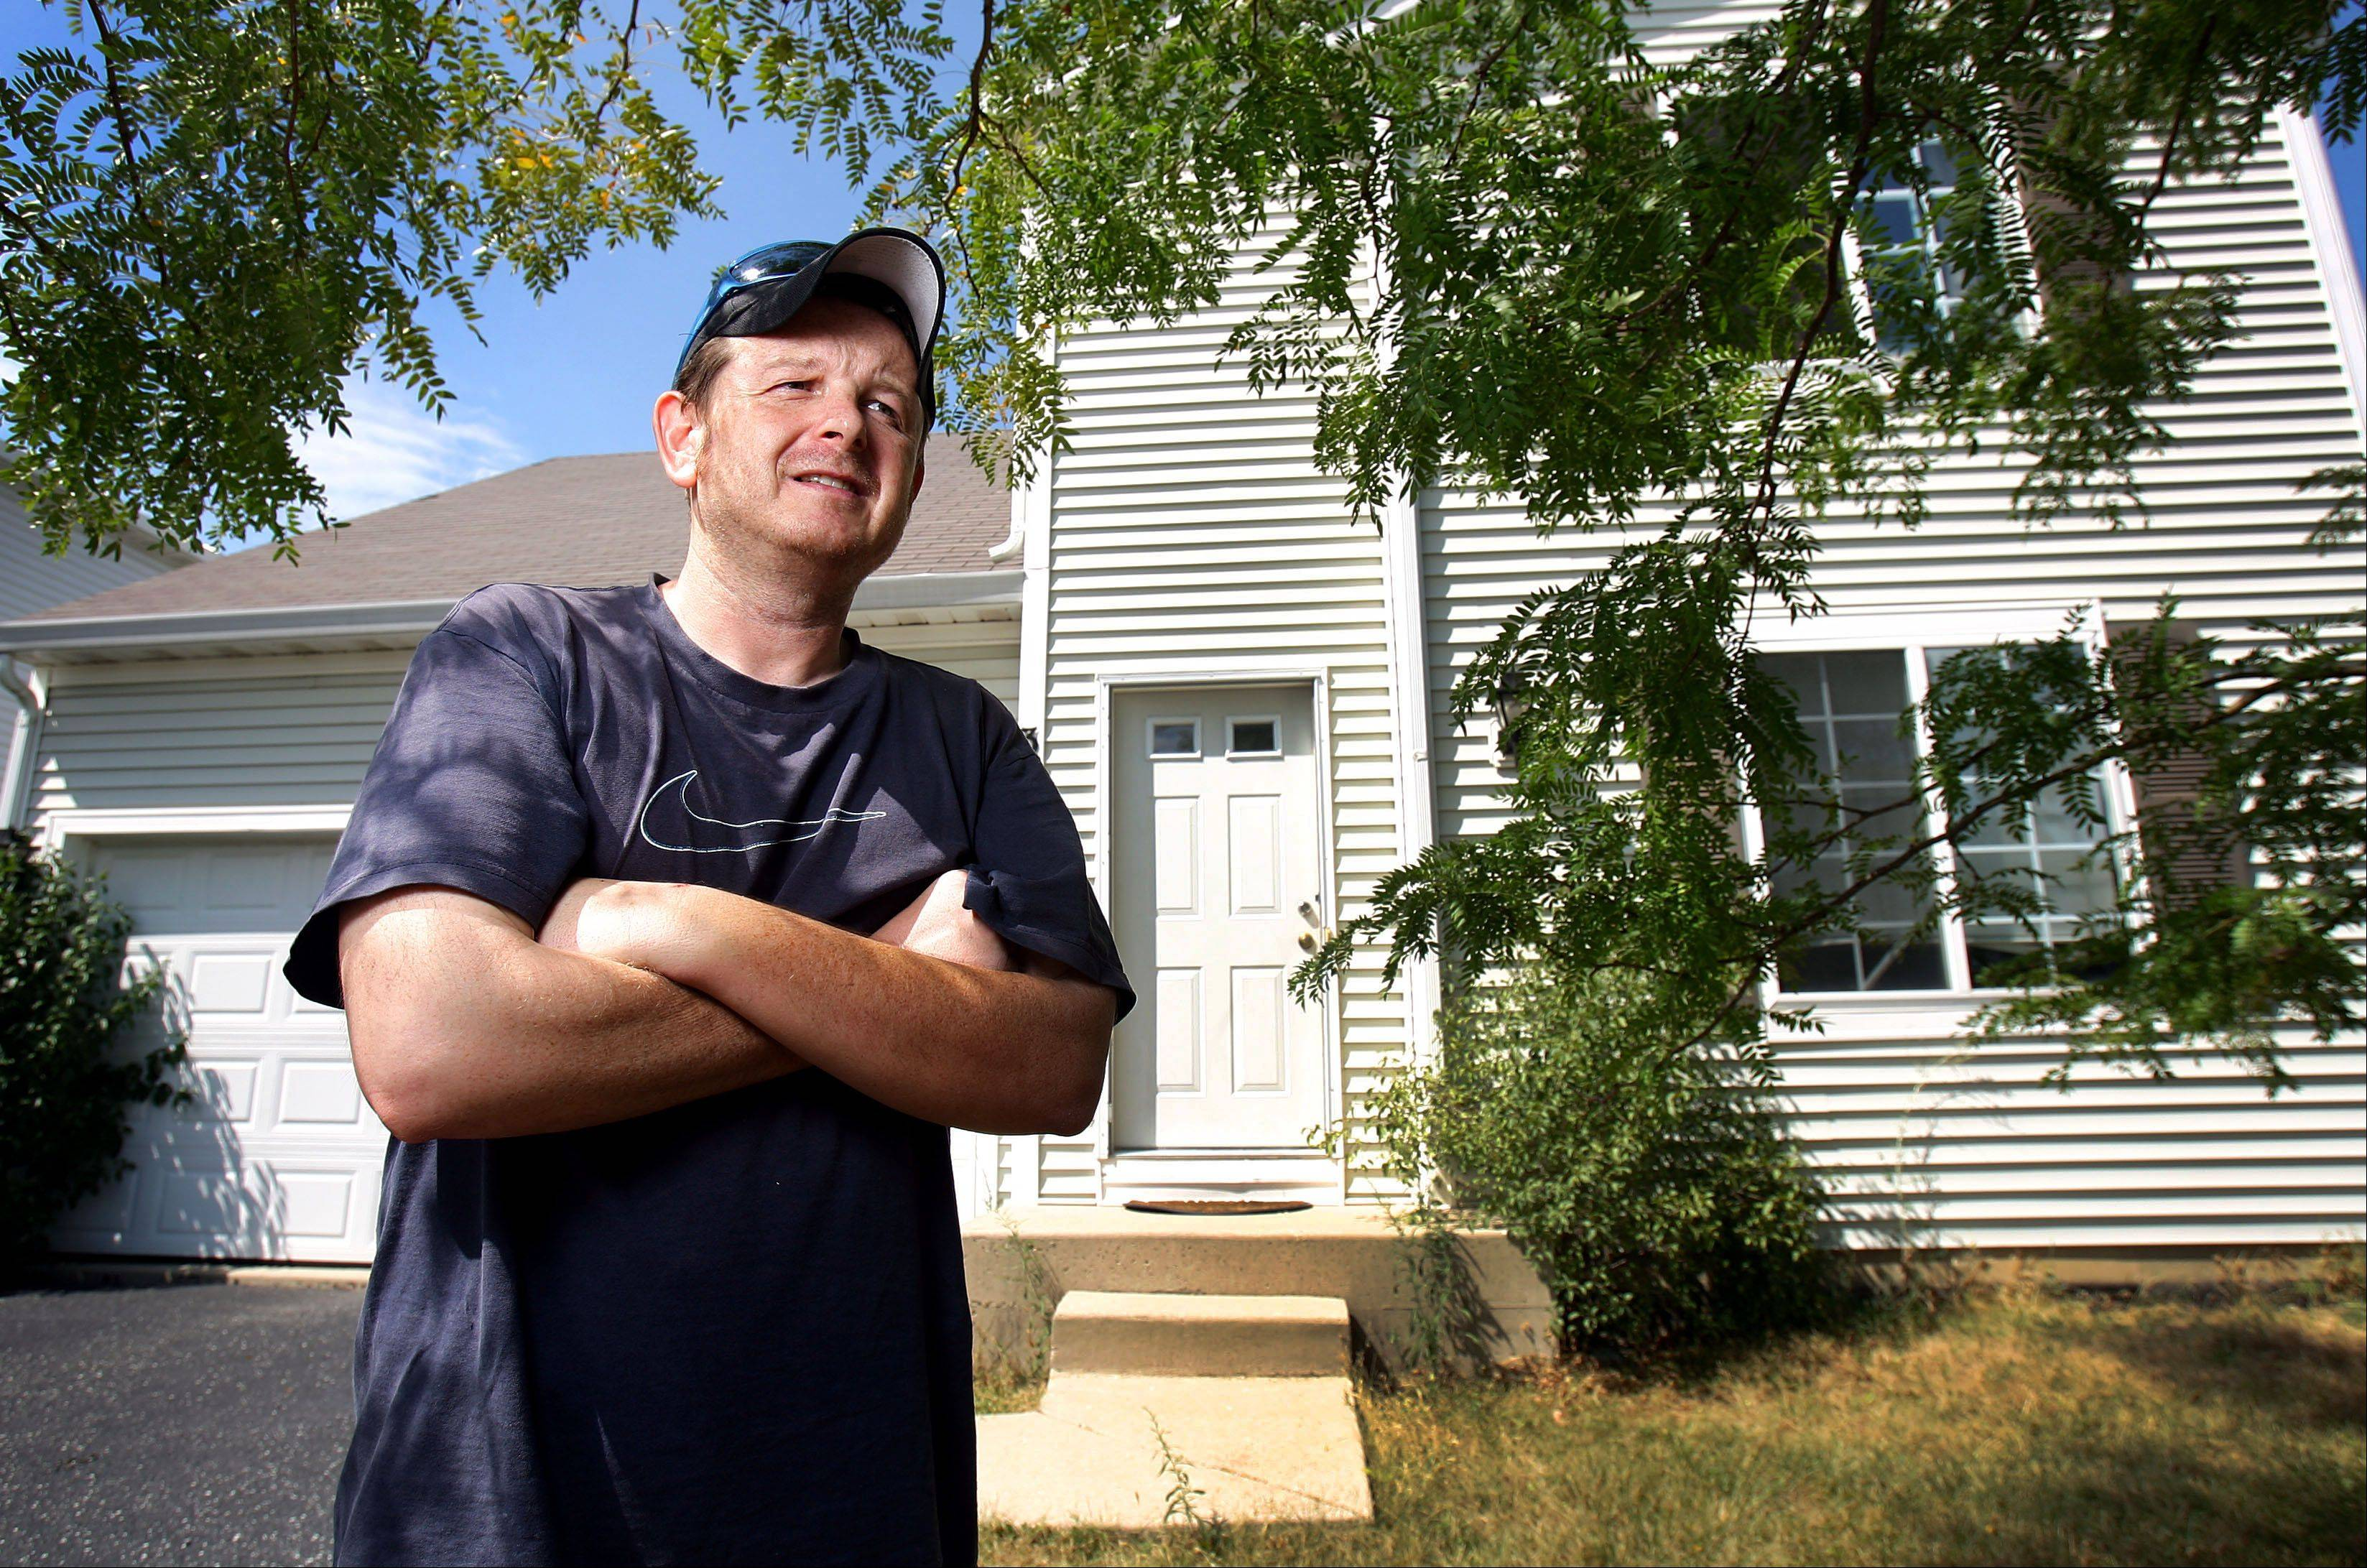 Round Lake Beach homeowner Derek Monroe filed an appeal of his property tax assessment in May and was told it could take more than two years for a decision and a couple months to determine if his paperwork was even received.